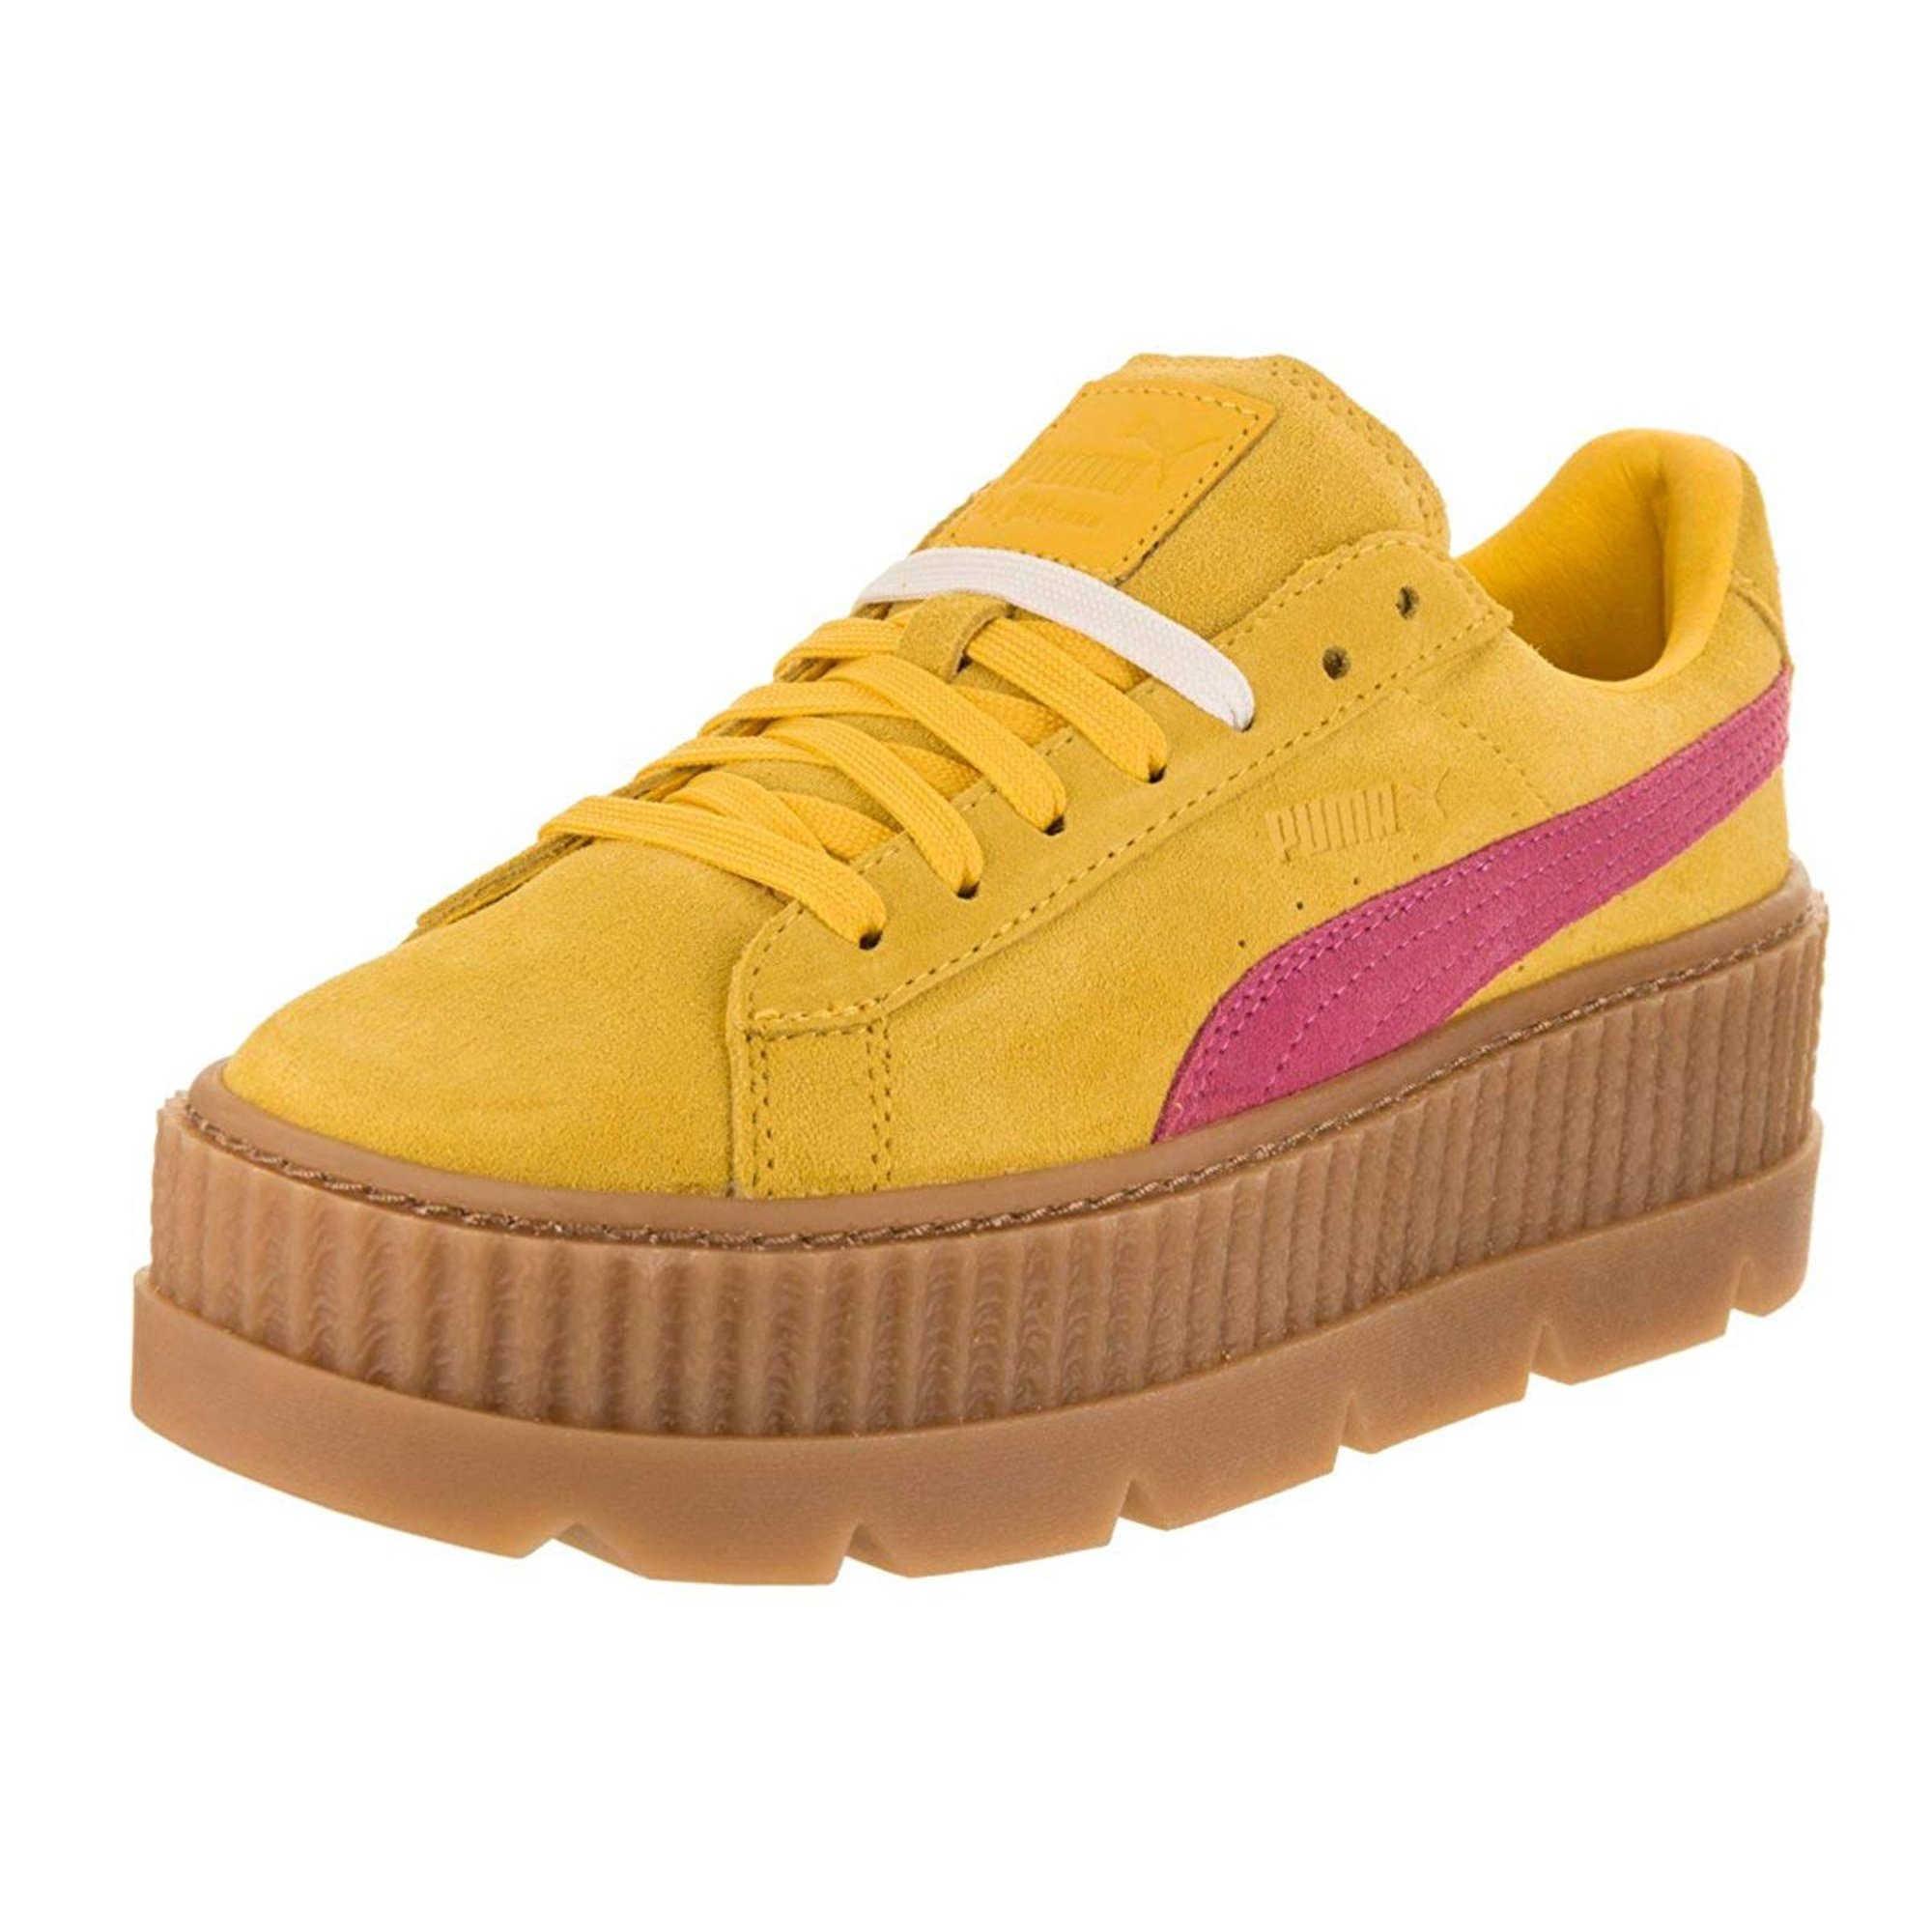 official photos ee0fe 28523 PUMA Womens Fenty by Rihanna Tan Cleated Creeper 36626802 ...